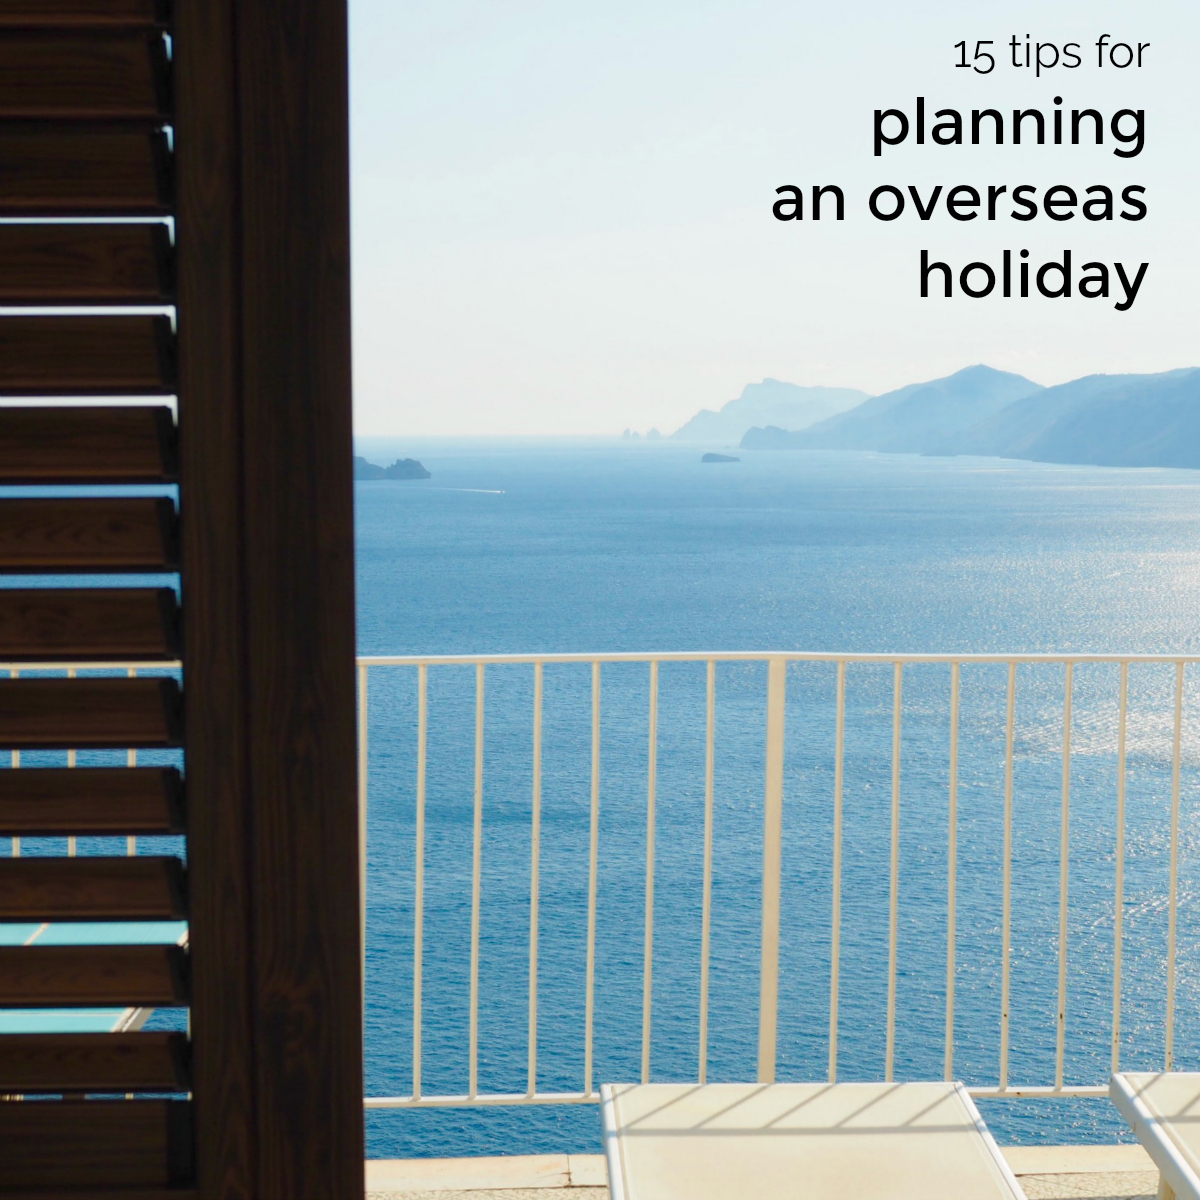 15 tips for how to plan an overseas holiday